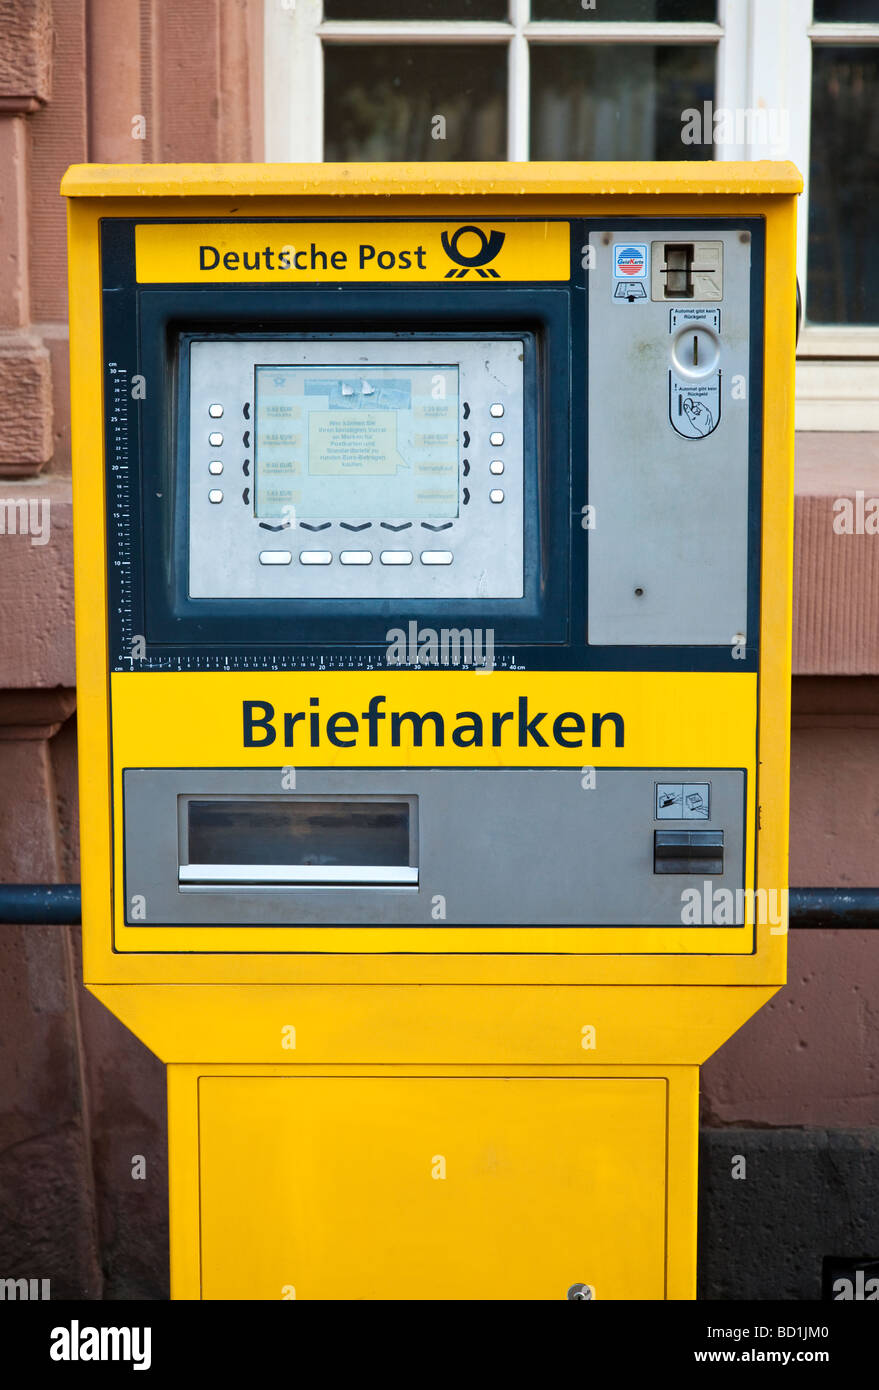 Deutsche Post machine selling stamps in Germany Europe - Stock Image